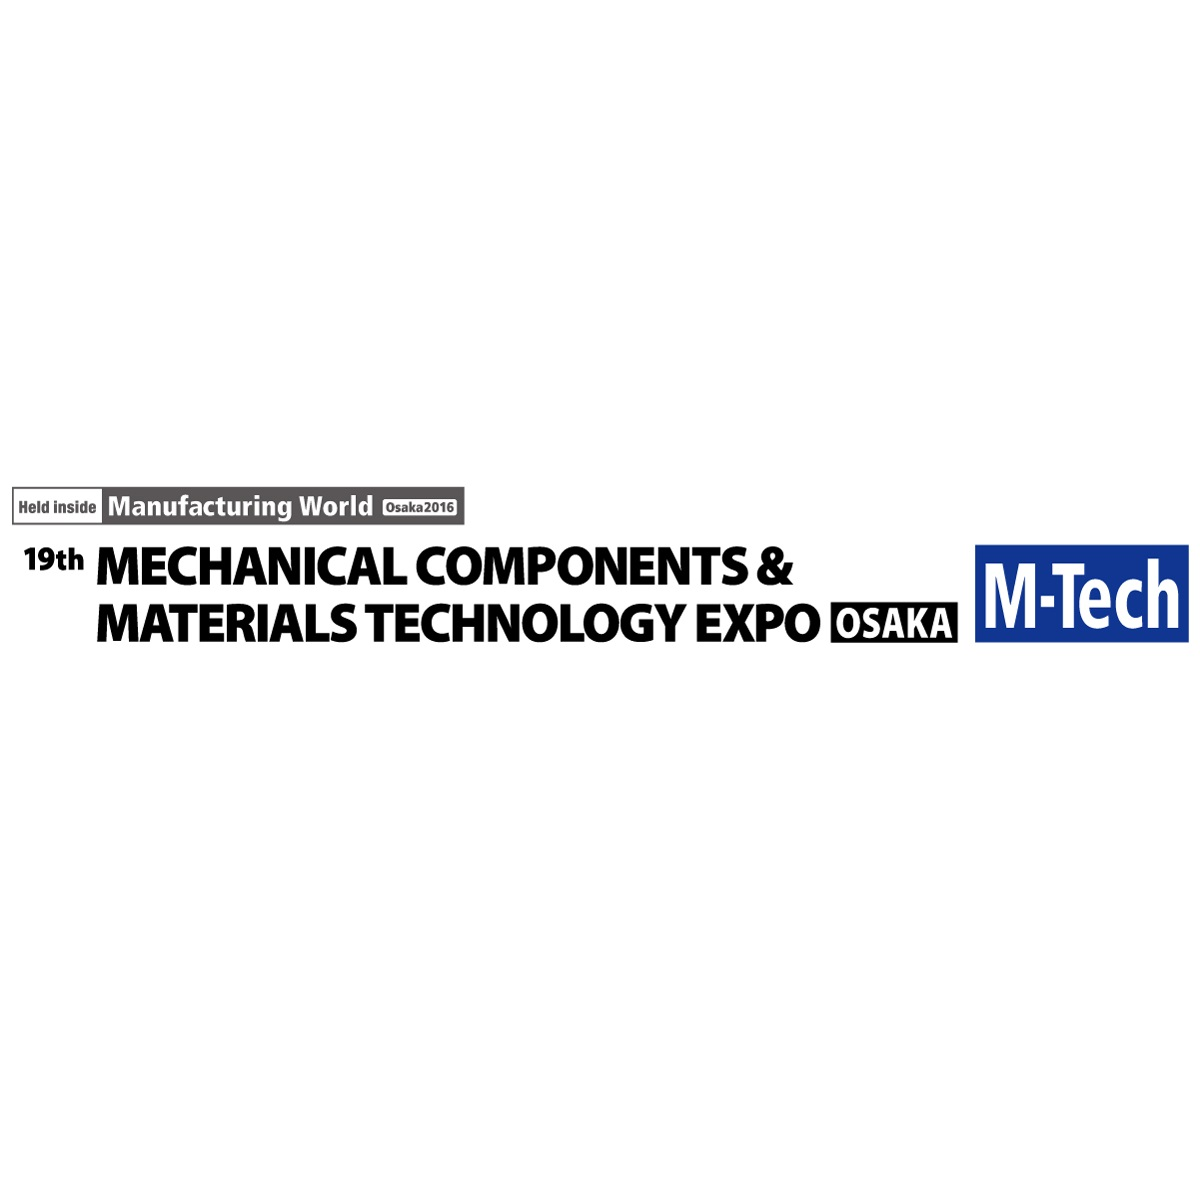 2016 Mechanical Components & Materials Technology Expo (M-Tech)